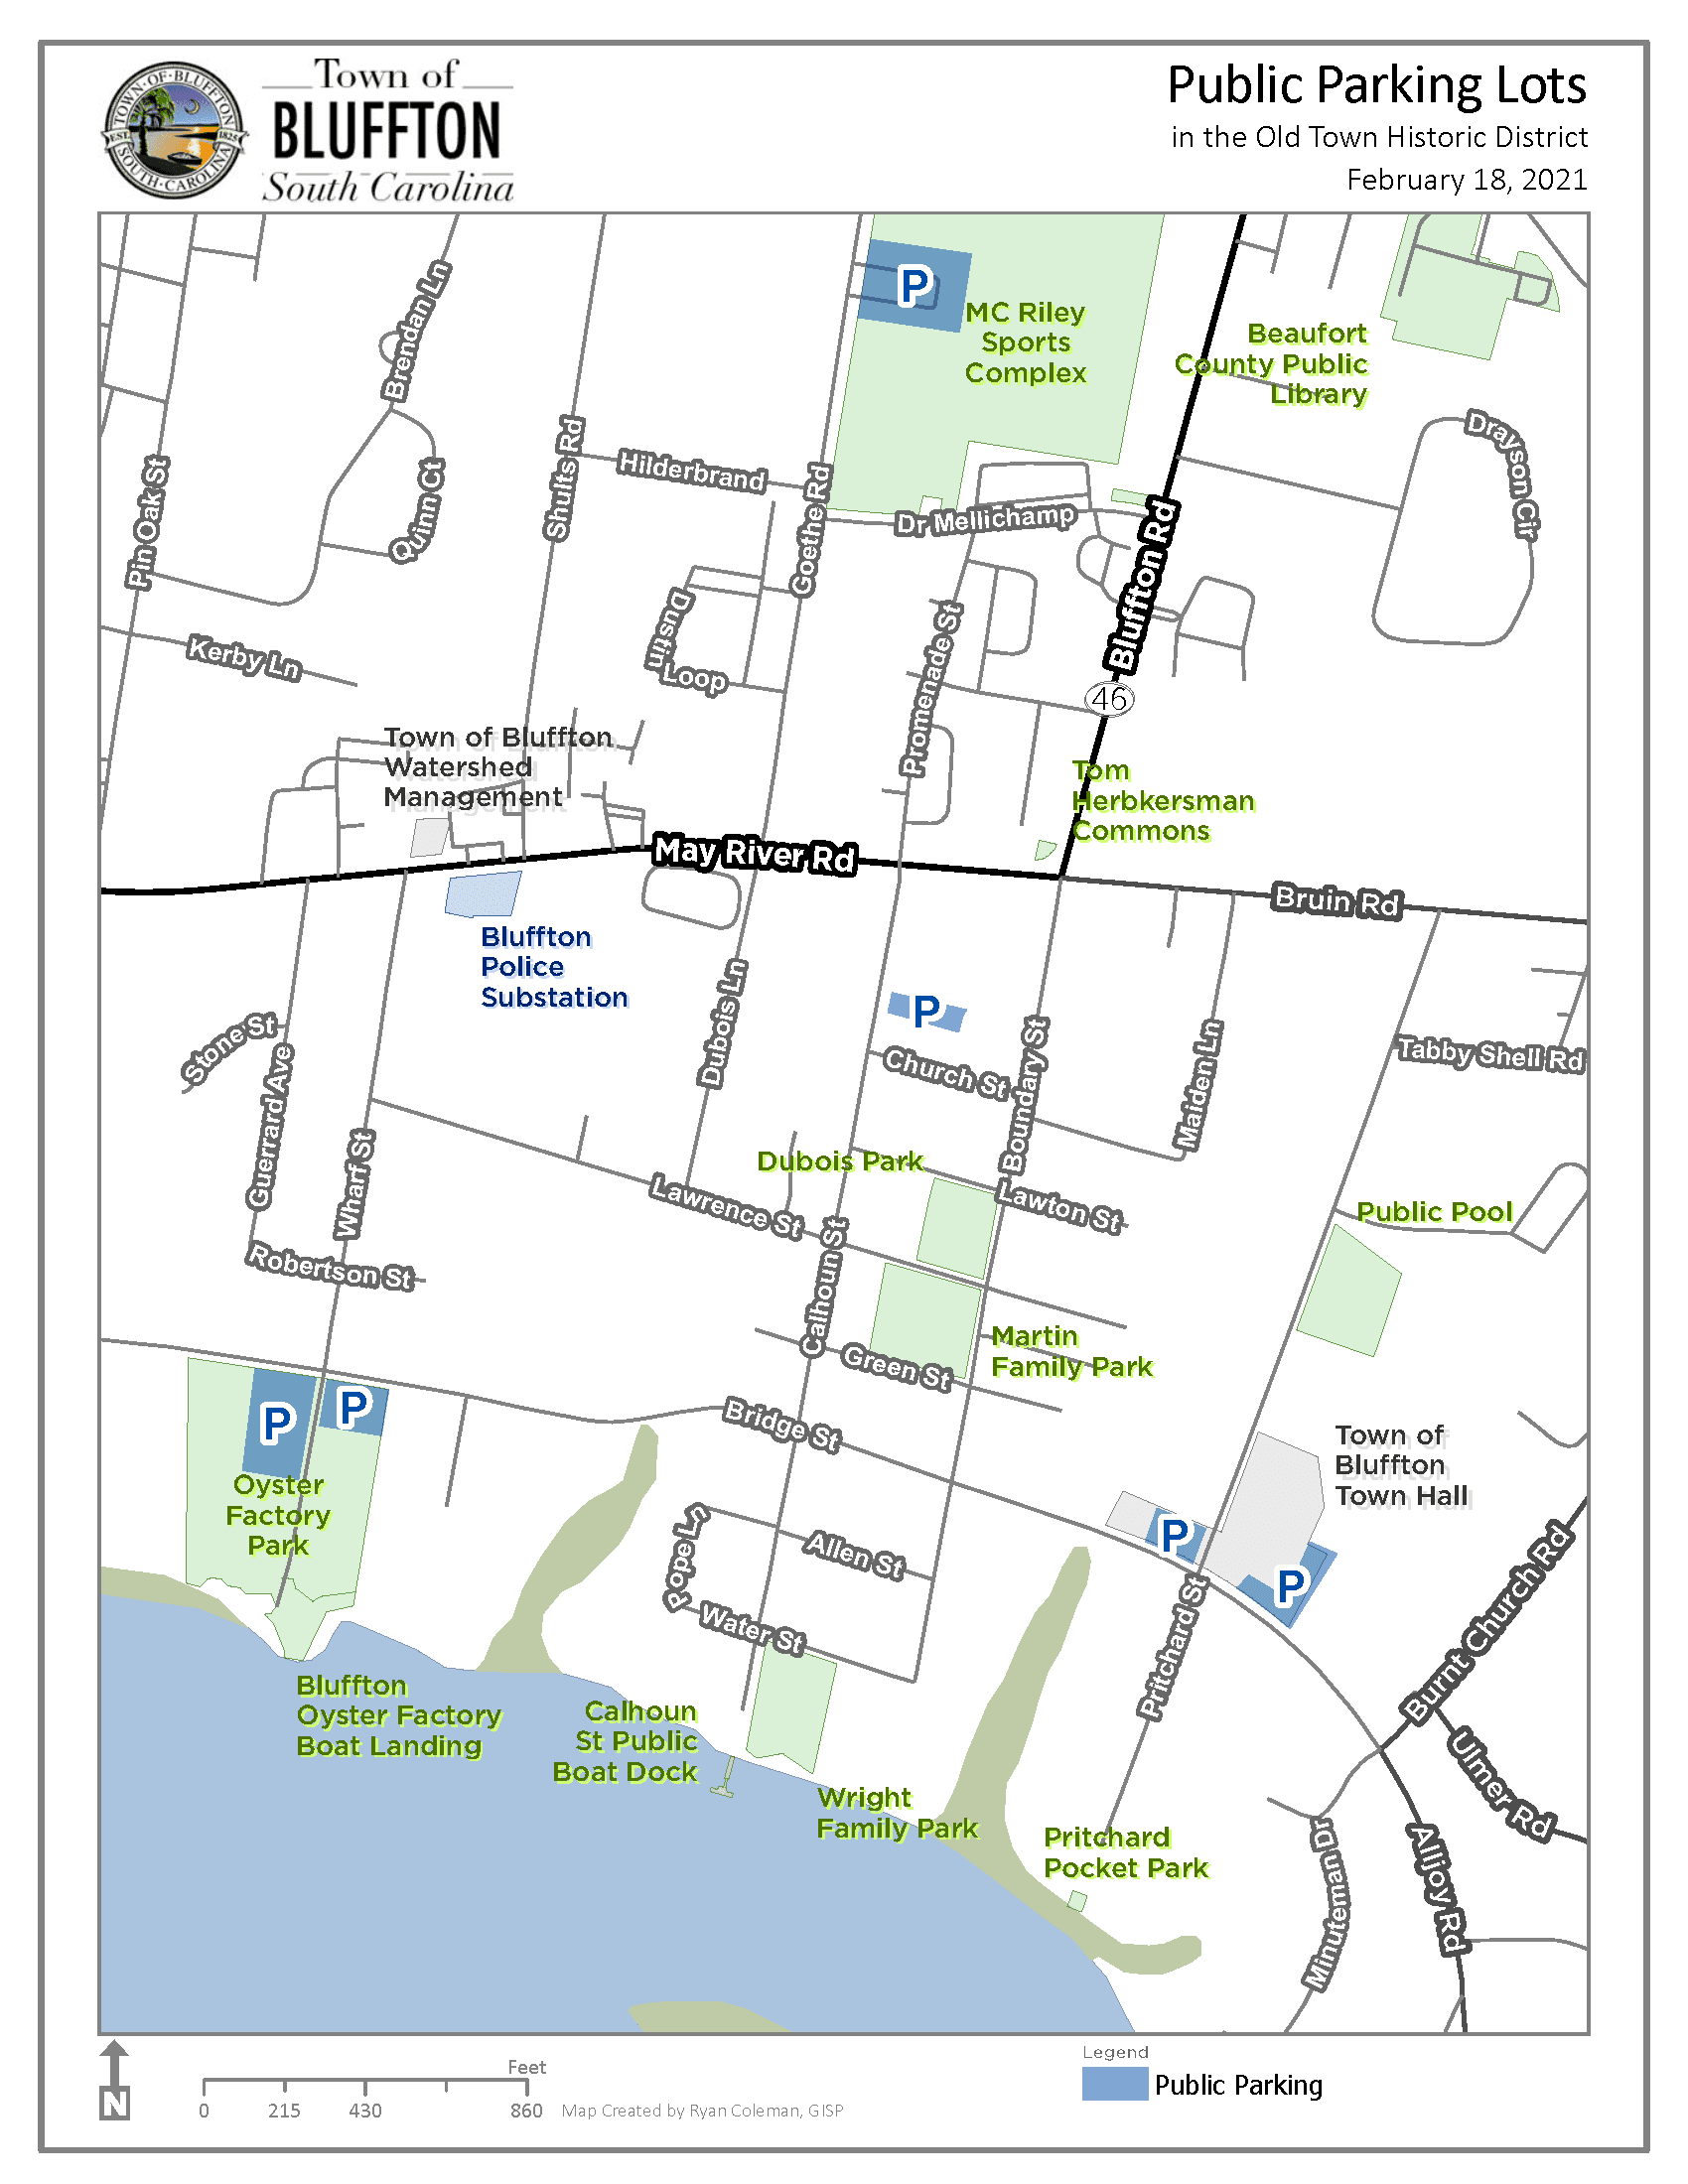 Old Town Bluffton Historic District Parking Map